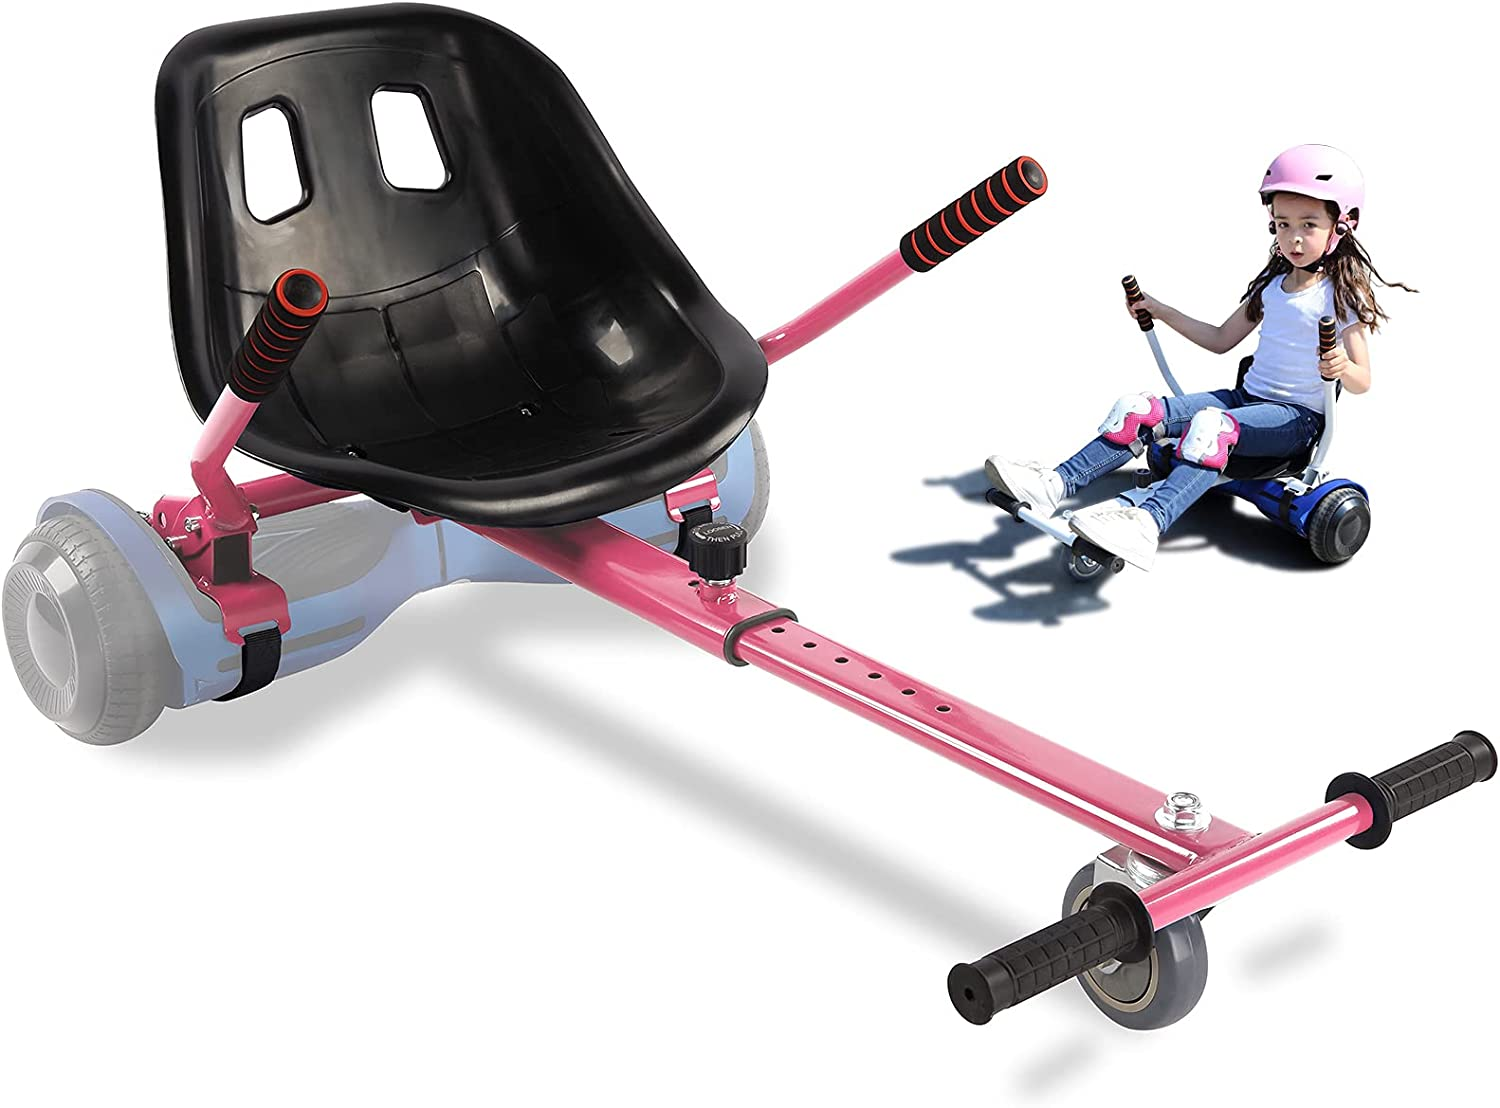 Max 67% OFF Sales KKA Hoverboard Accessories Seat Fits Attachment Self